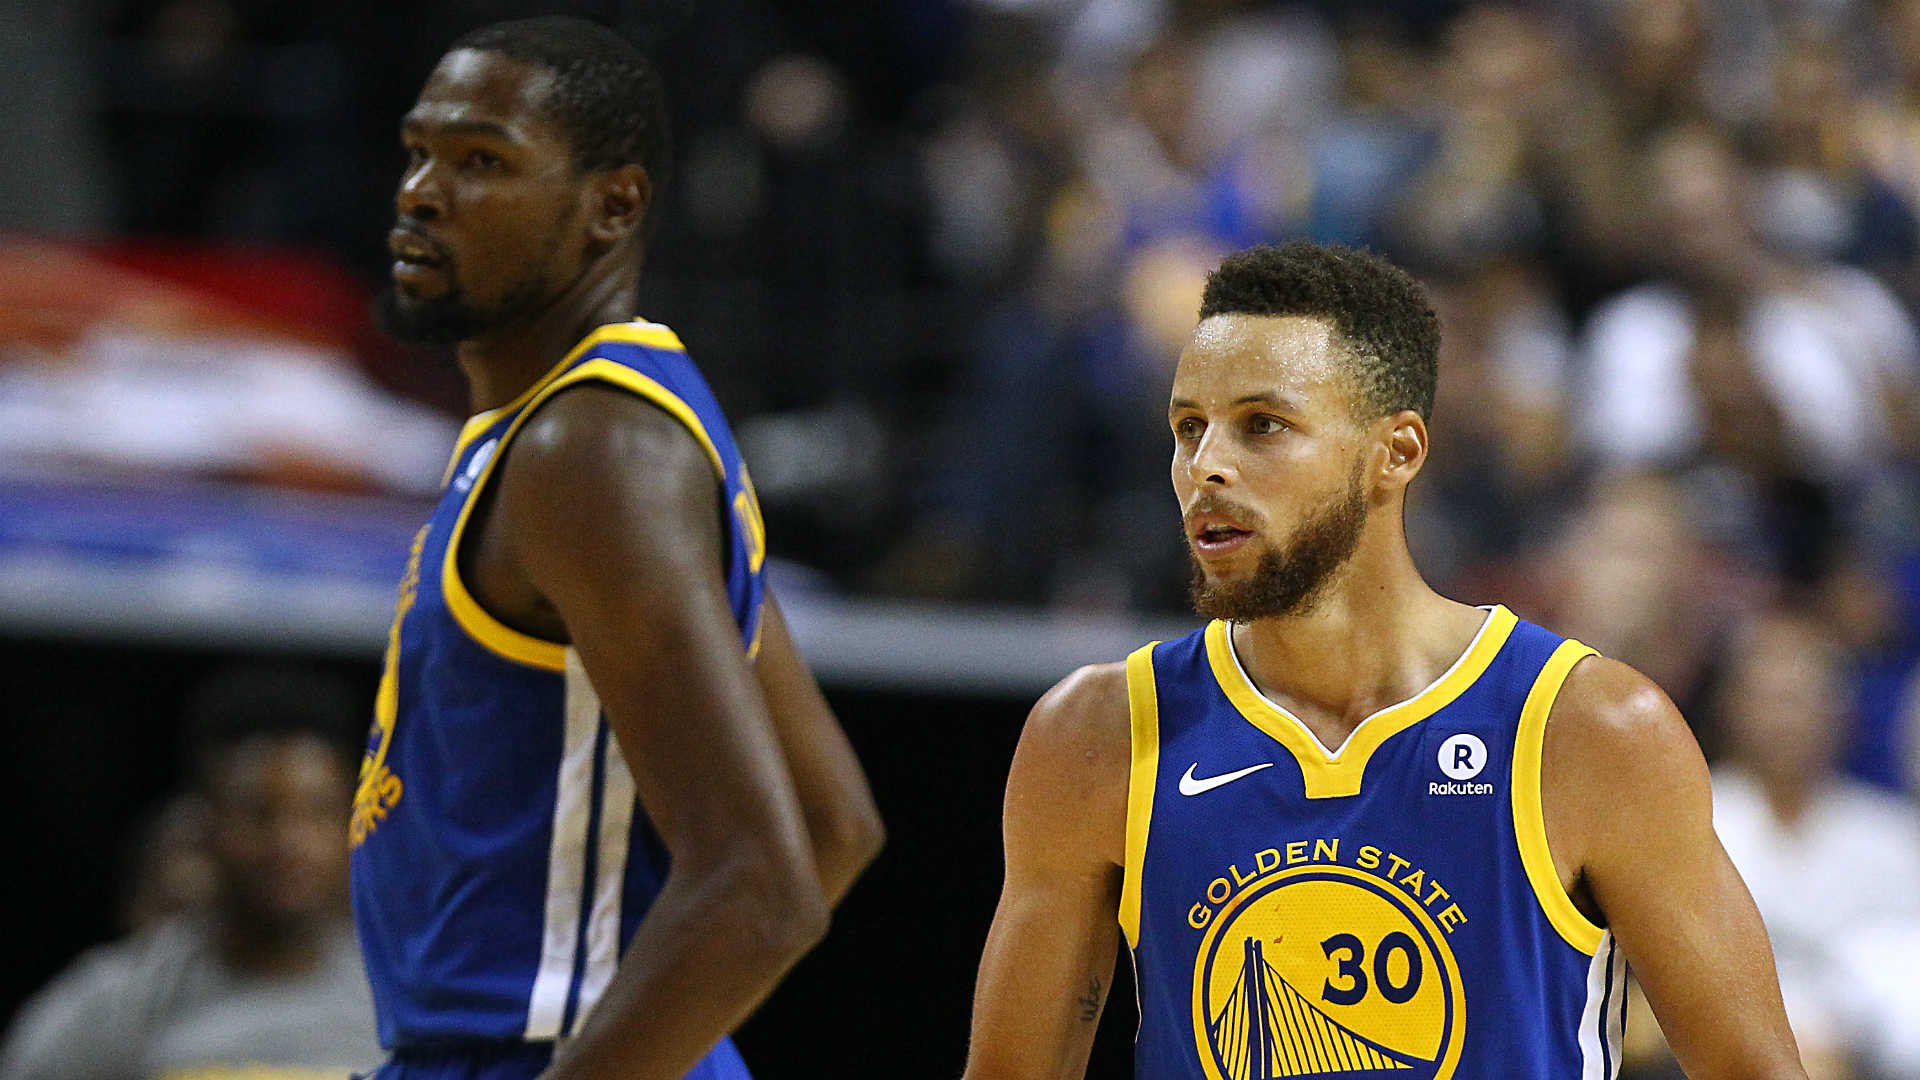 Stephen Curry injury, Kevin Durant ejection overshadow Warriors' rally vs. Pelicans